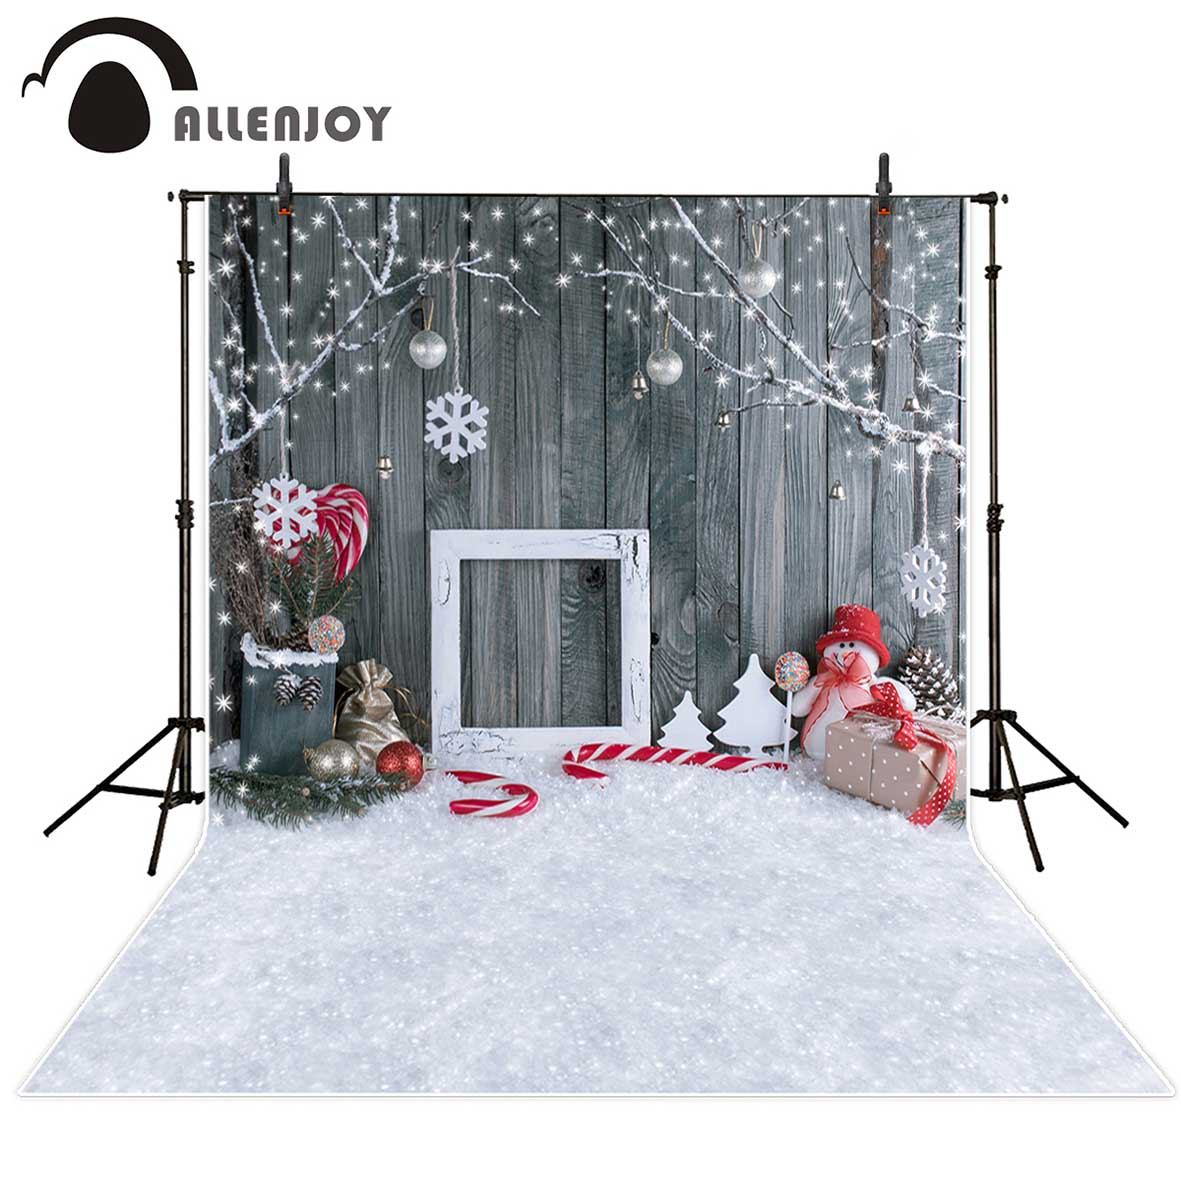 Allenjoy photographic background Christmas snowman gray woodwall snowflake backdrop photocall new photobooth vinyl photography allen joy photographic background cute cartoon fish wood backdrop photography without stand